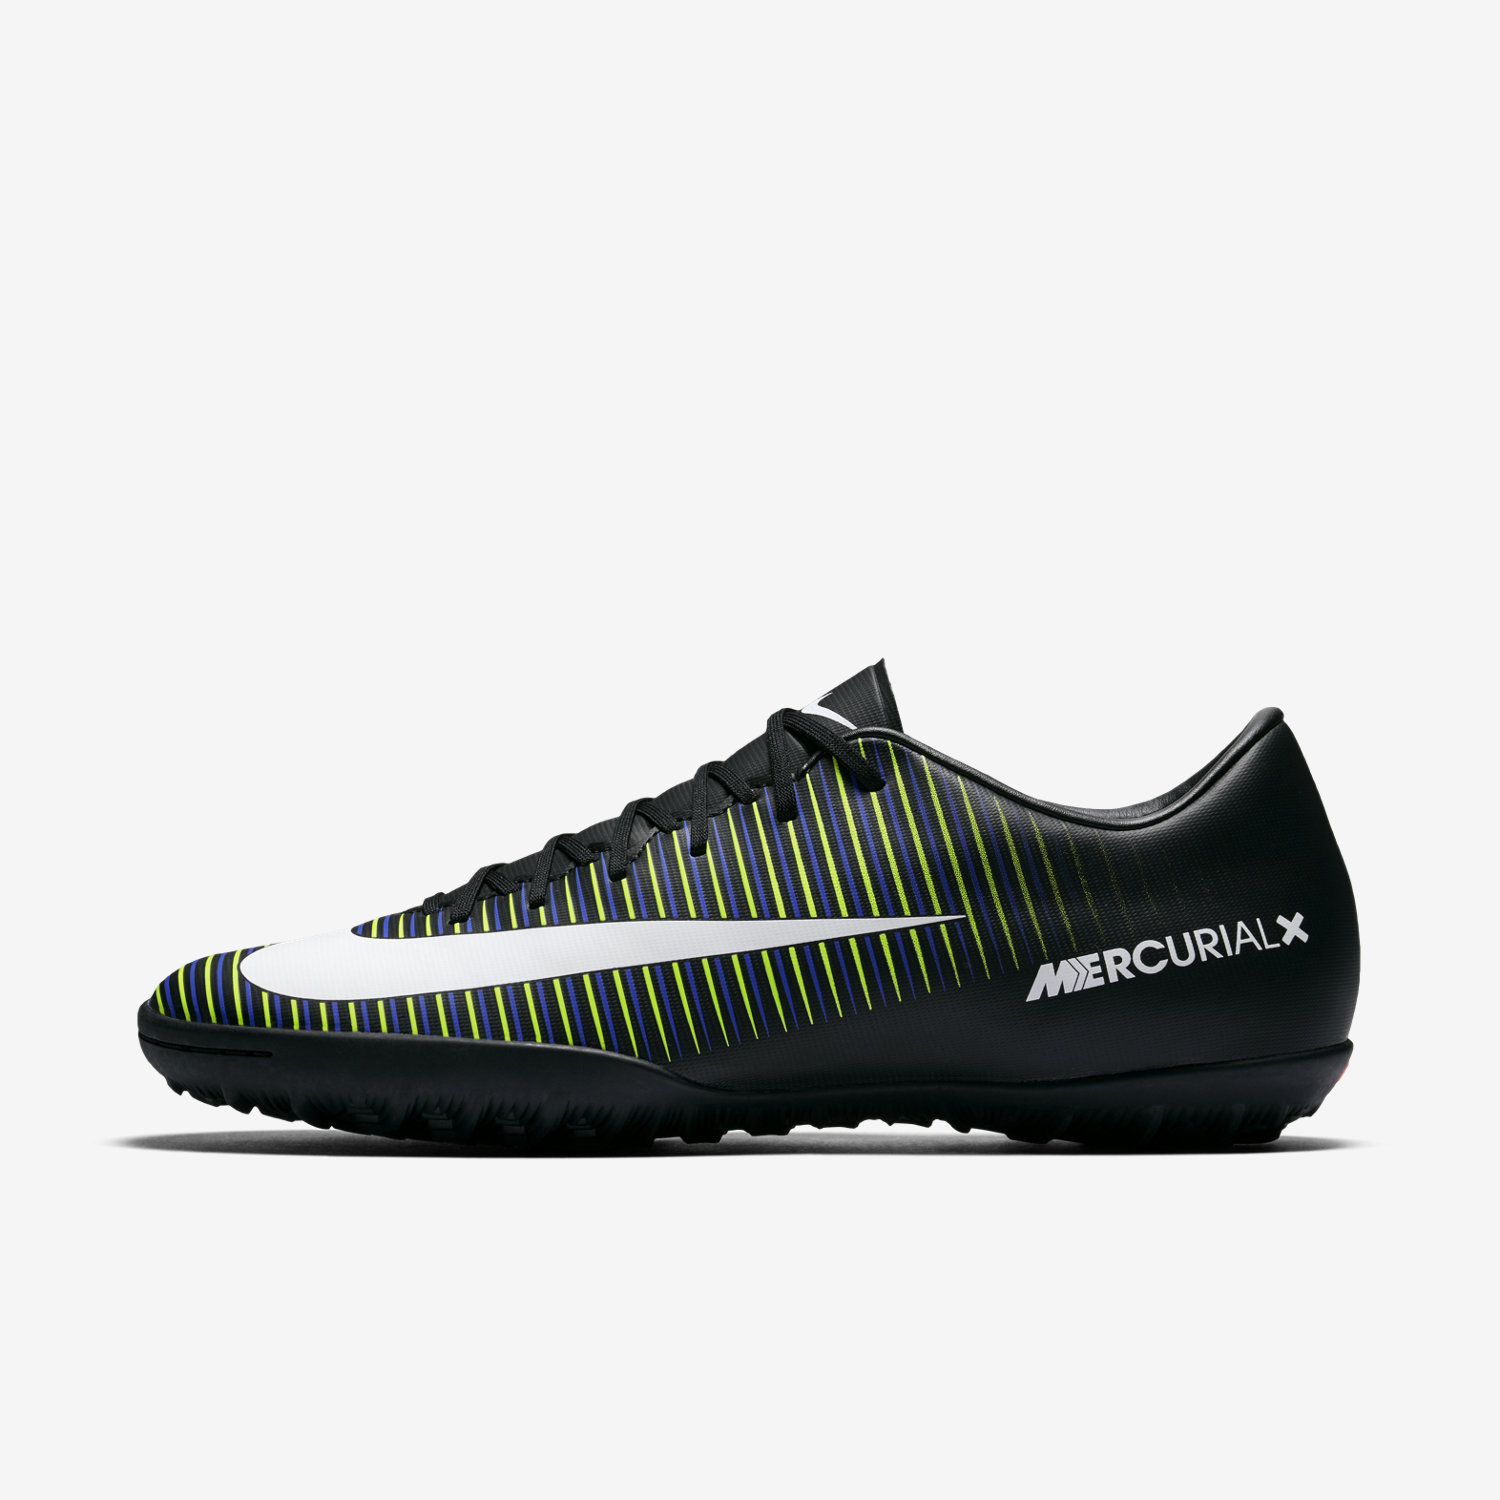 Nike Mercurial Victory VI TF Mens Black/White/Electric Green/Paramount Blue M998921TV Shoes